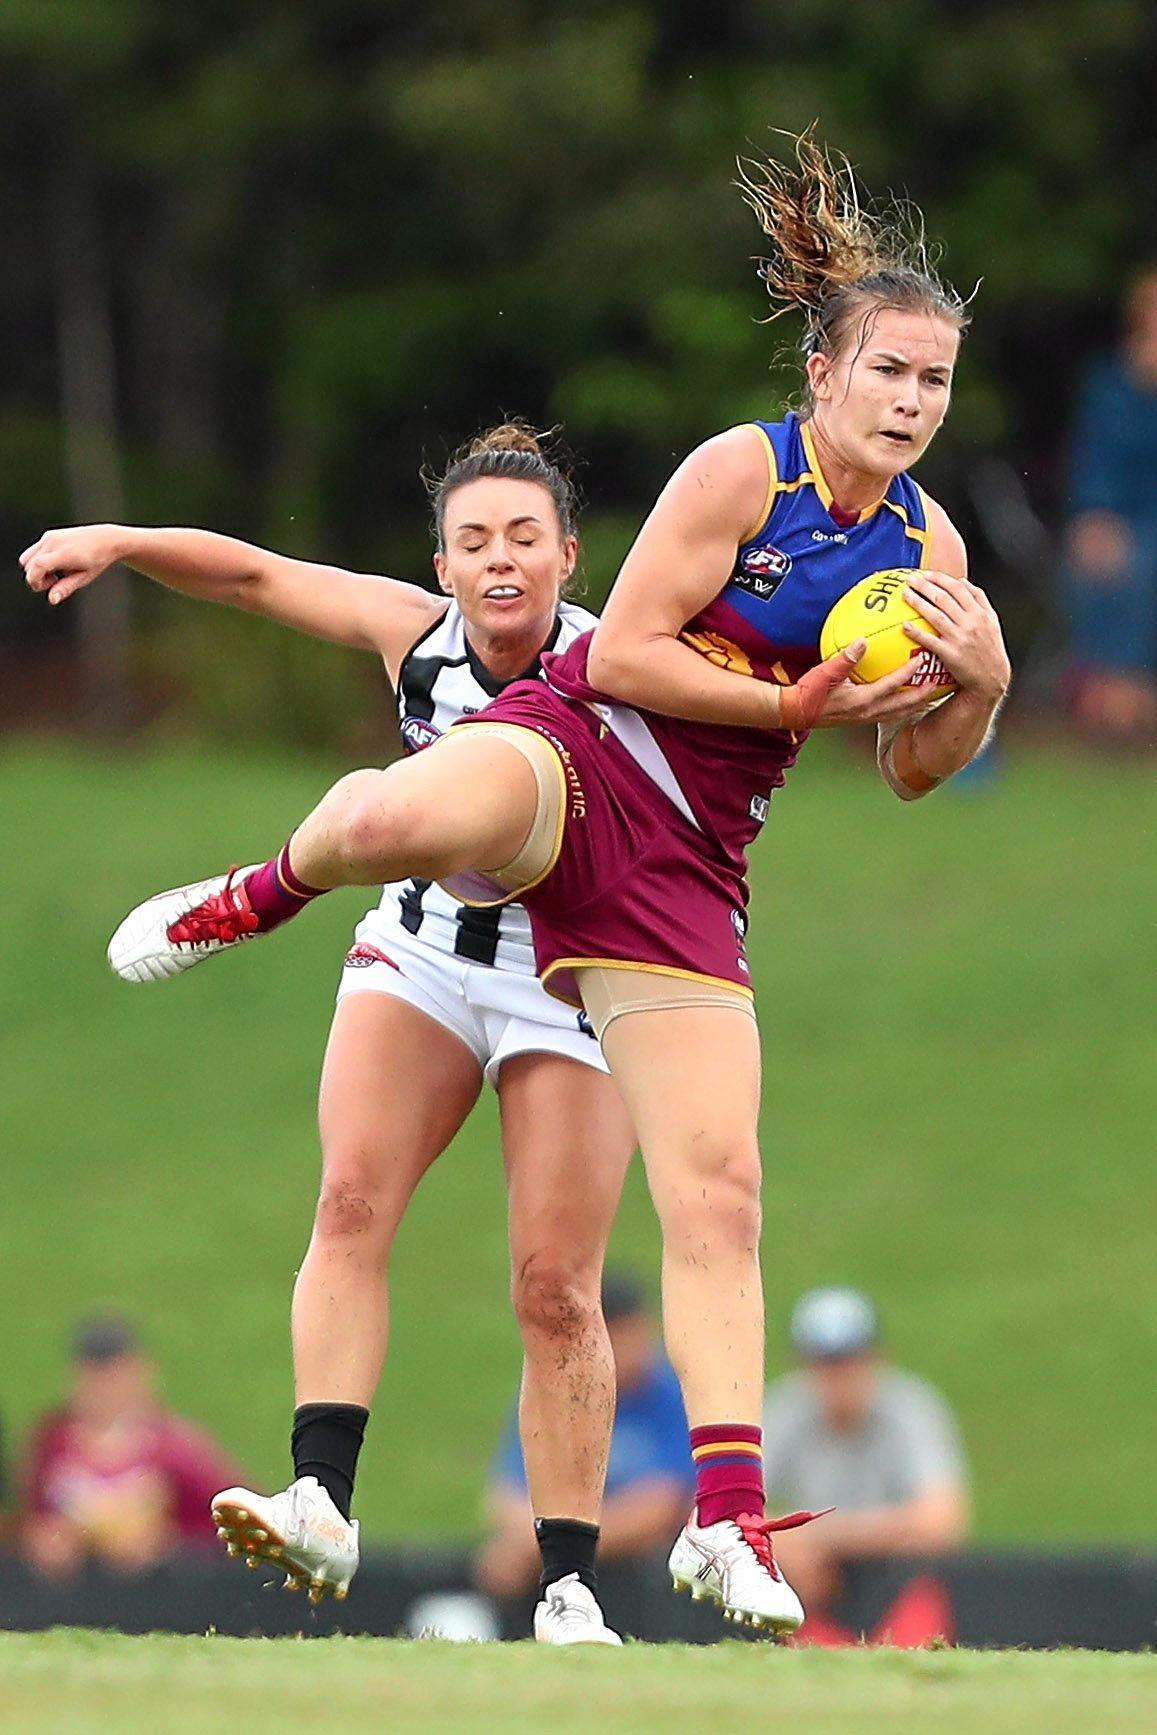 TAKING A MARK: Shannon Campbell of the Lions during an AFLW match against the Magpies at Moreton Bay last season.